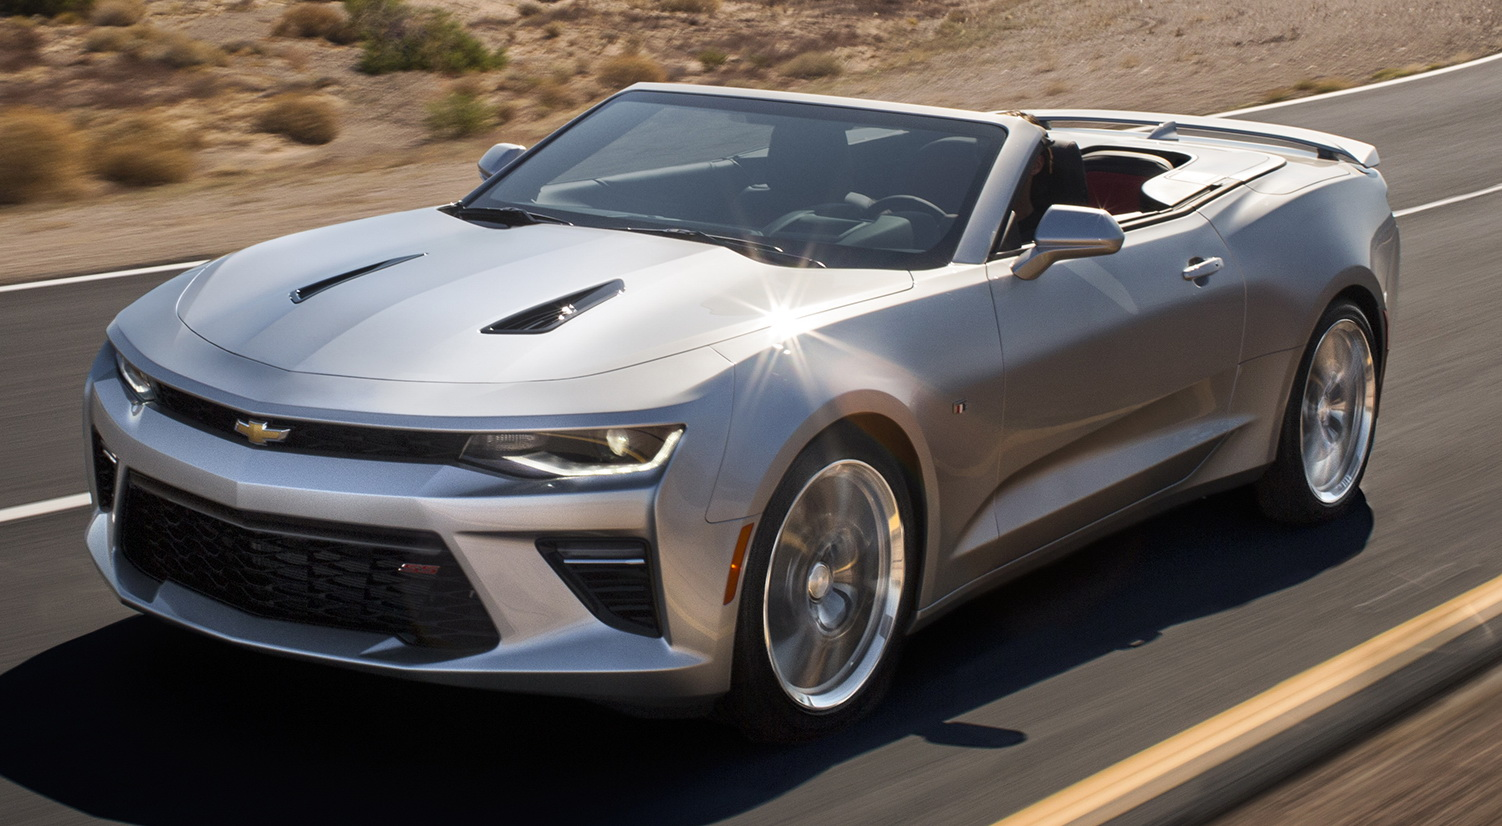 new chevrolet camaro convertible photo gallery car gallery sports cars autocar india. Black Bedroom Furniture Sets. Home Design Ideas